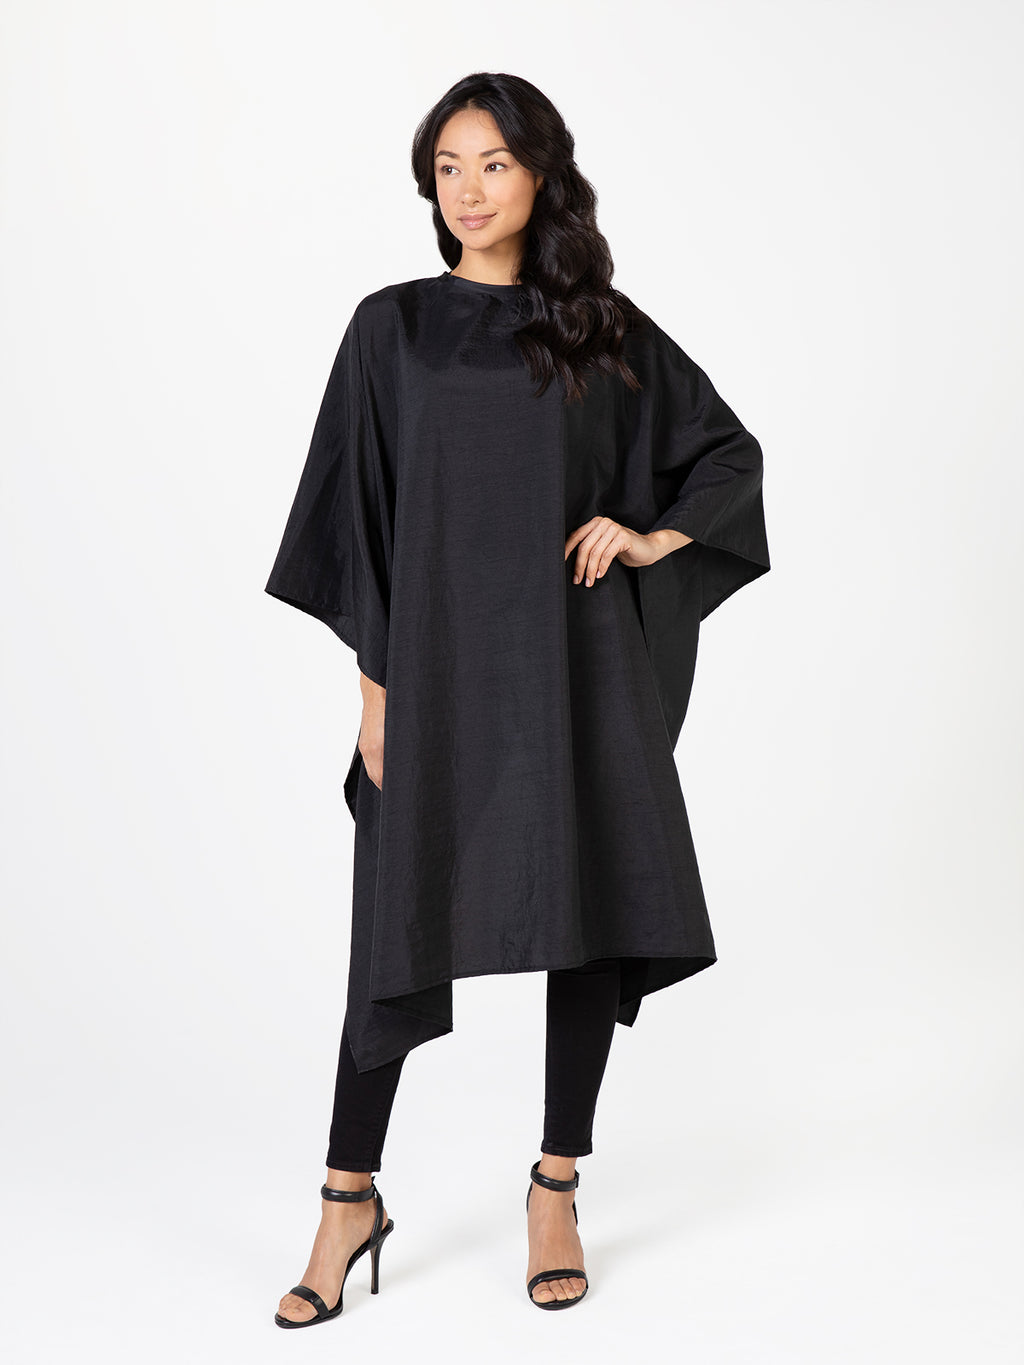 Betty Dain Creations Super Size Cutting Cape